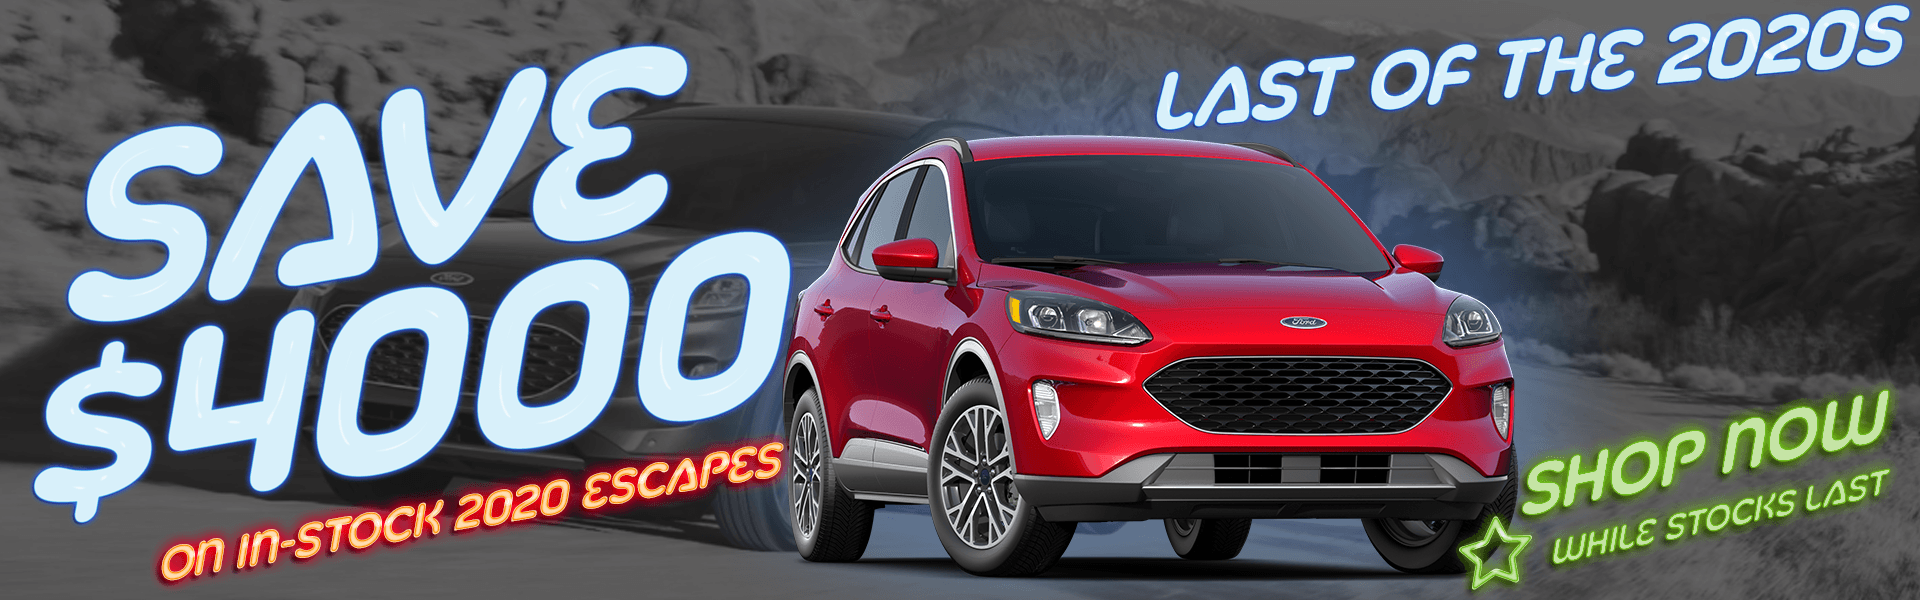 $4000 off 2020 Escape